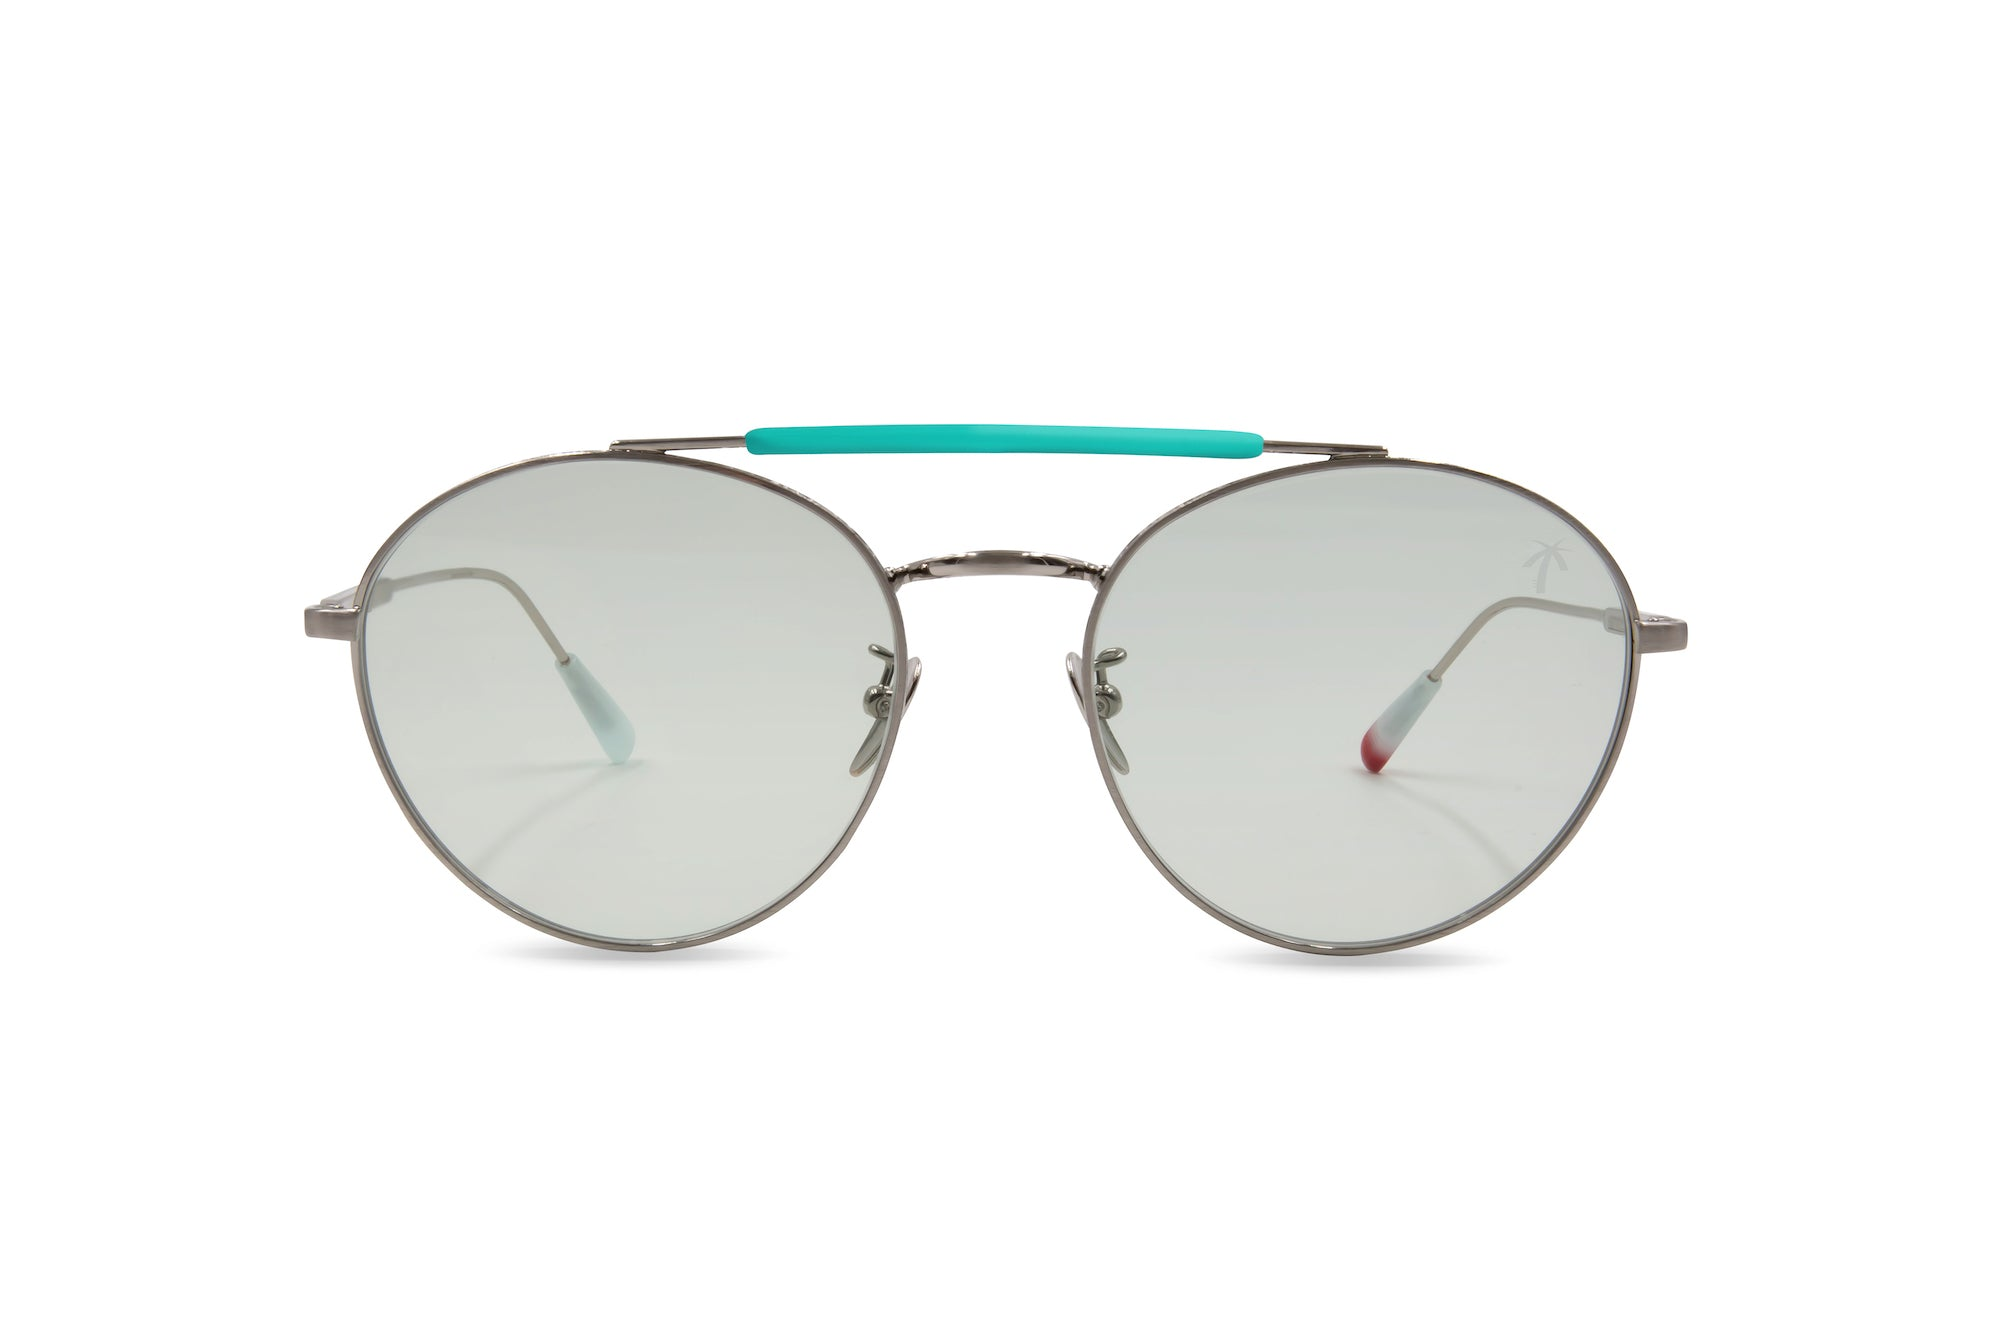 Westwood in Pale Green - Peppertint - Designer sunglasses